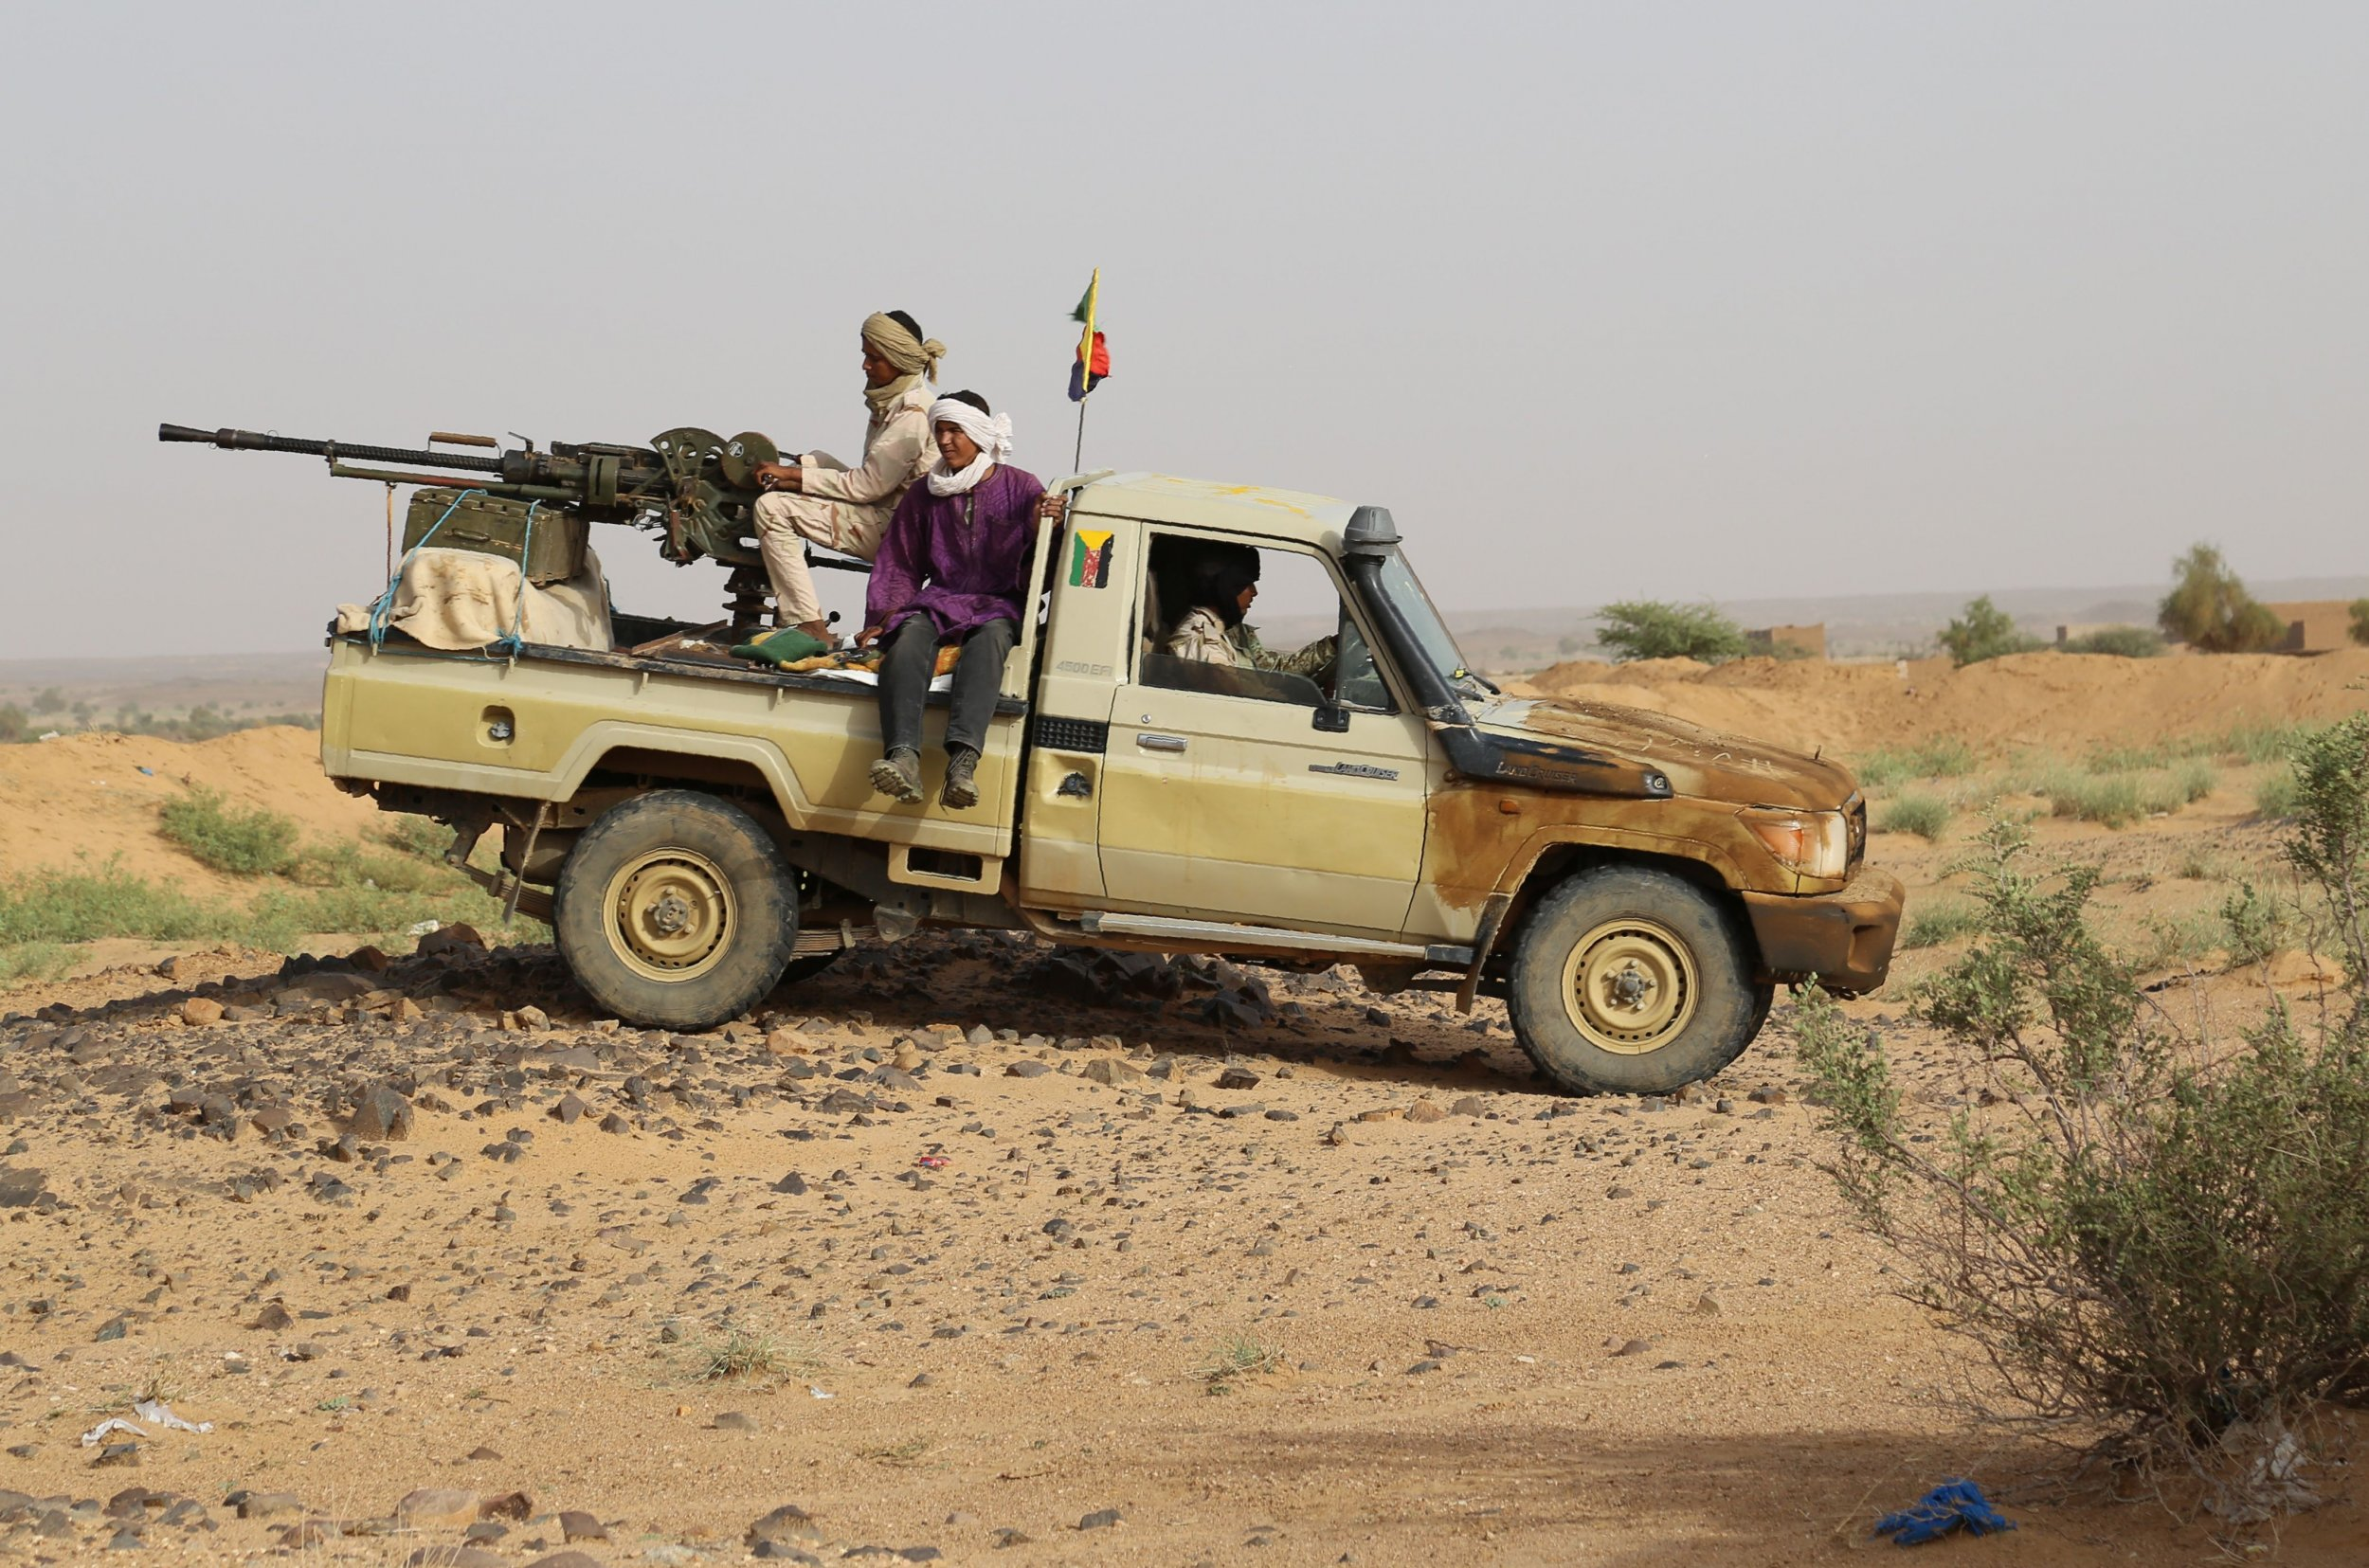 Fears Mount as Sahel Conflict Moves North